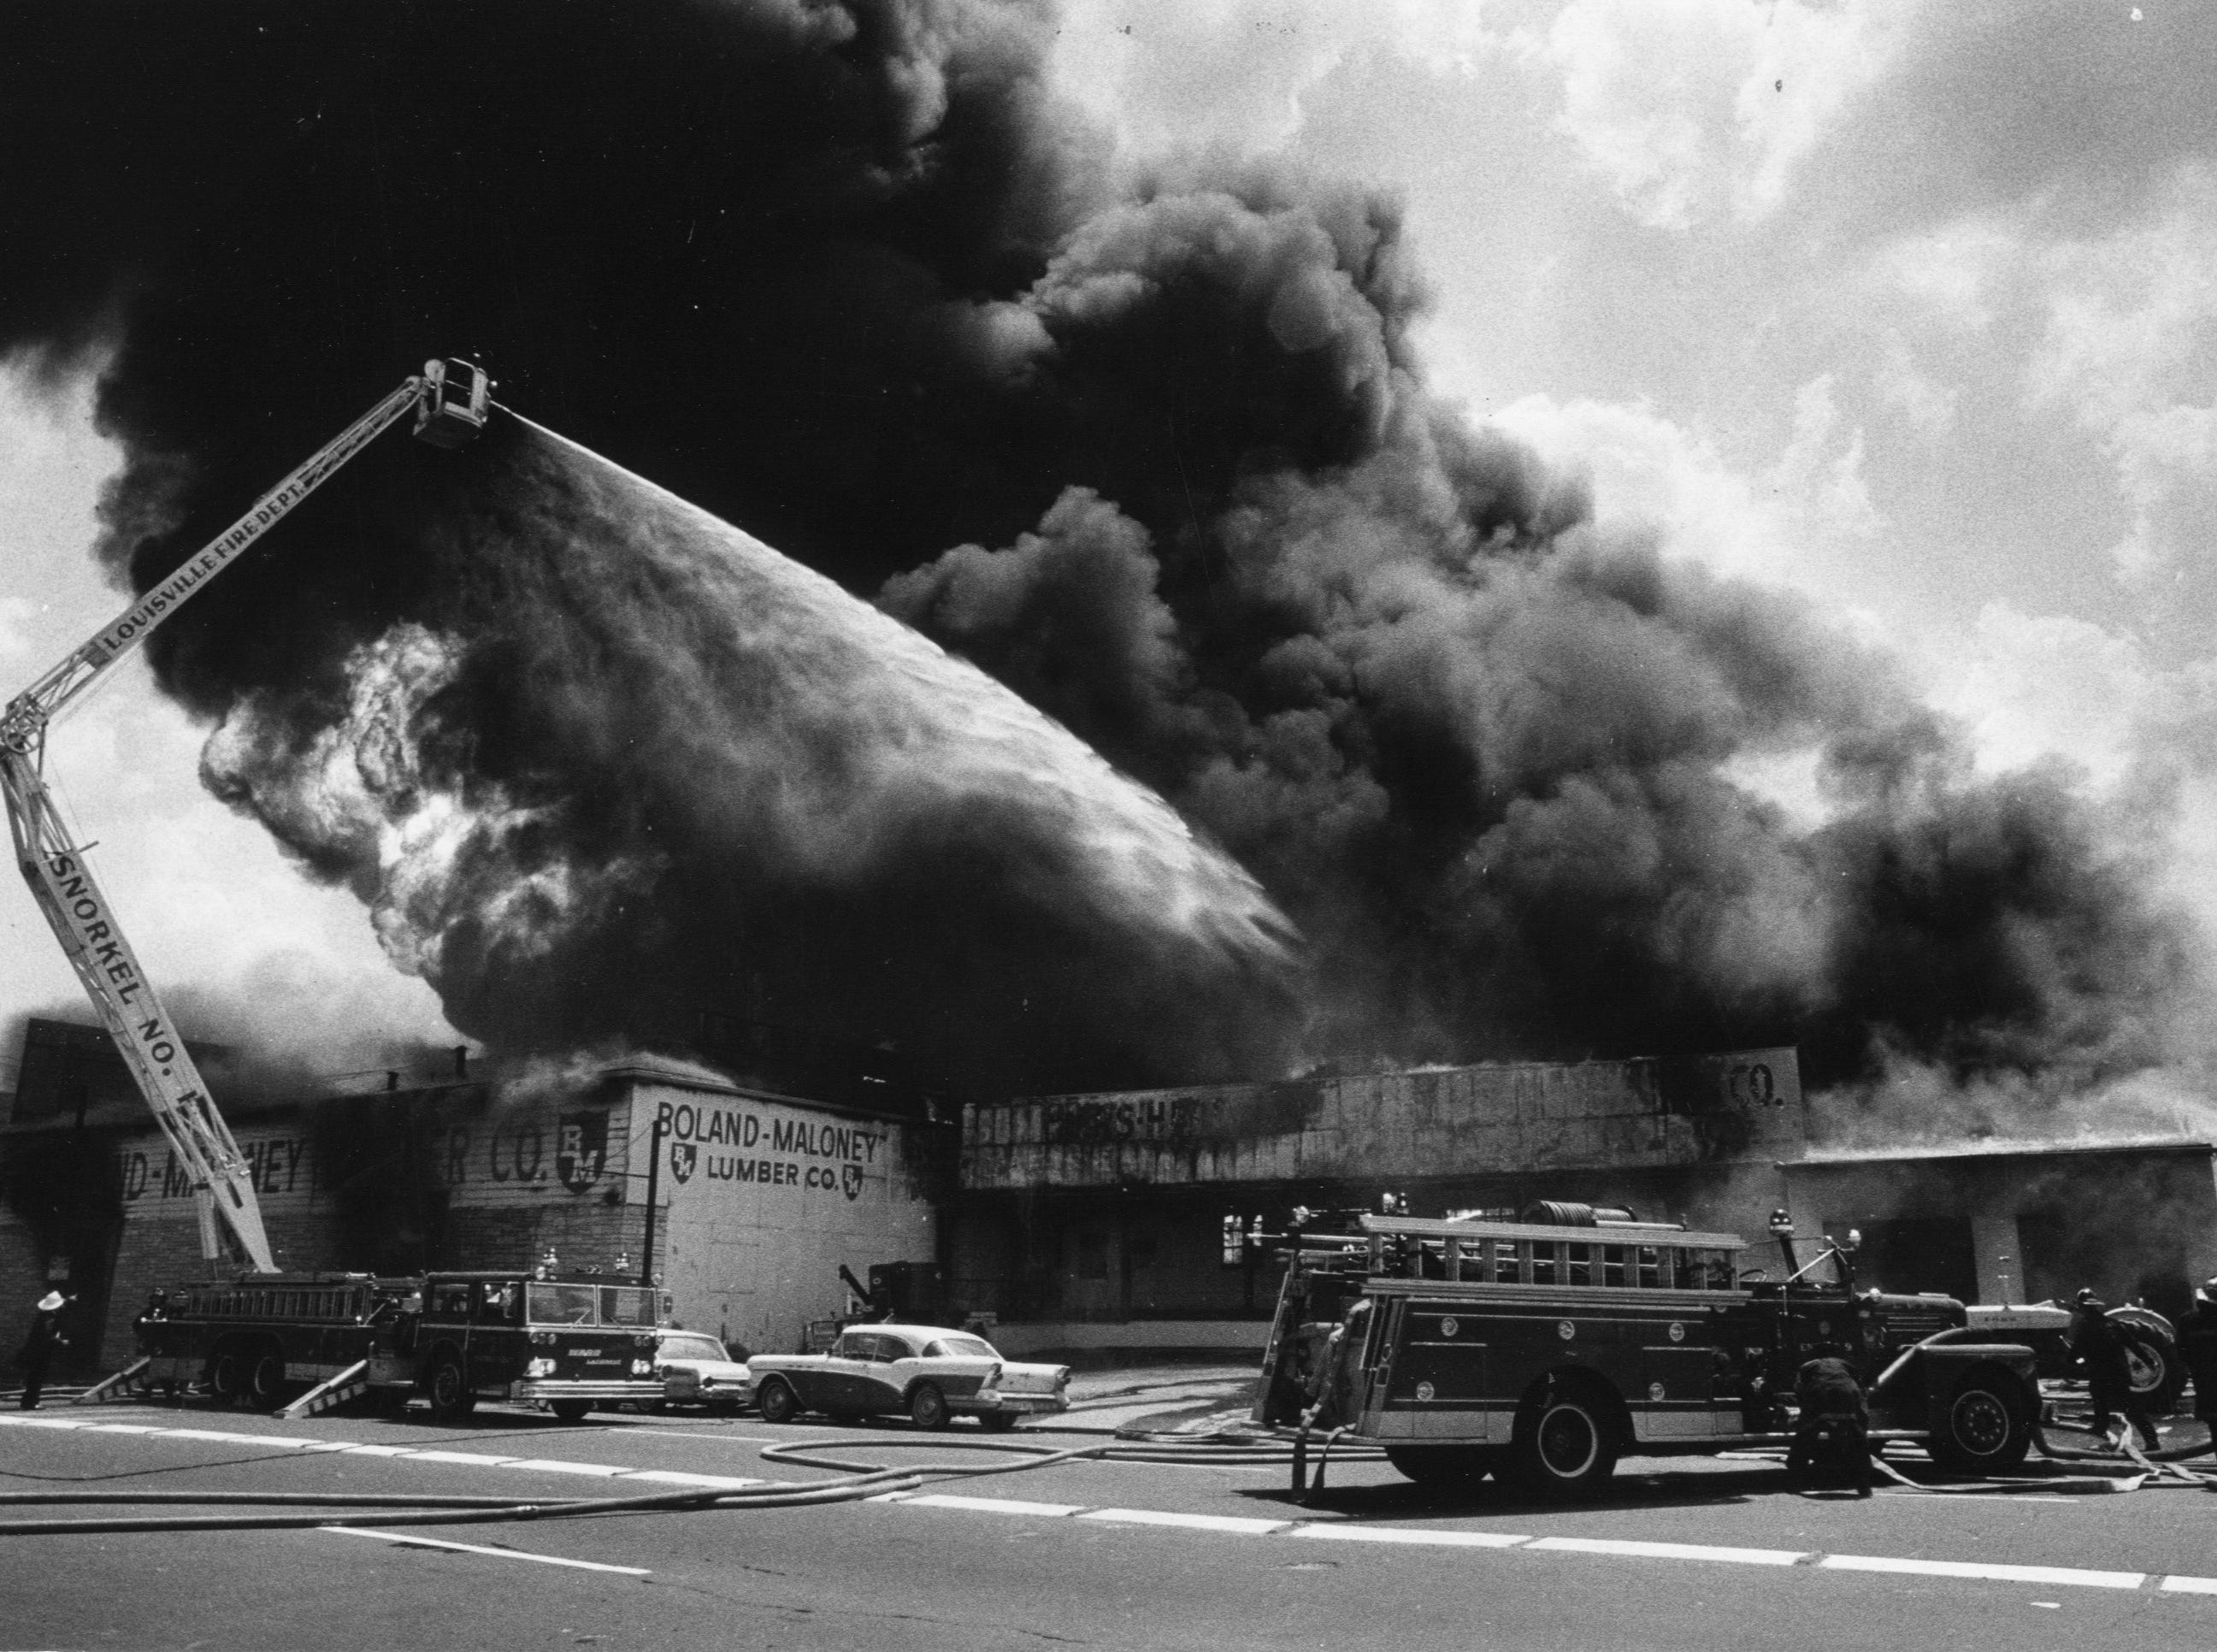 A fire at the Boland-Maloney Lumber Company.